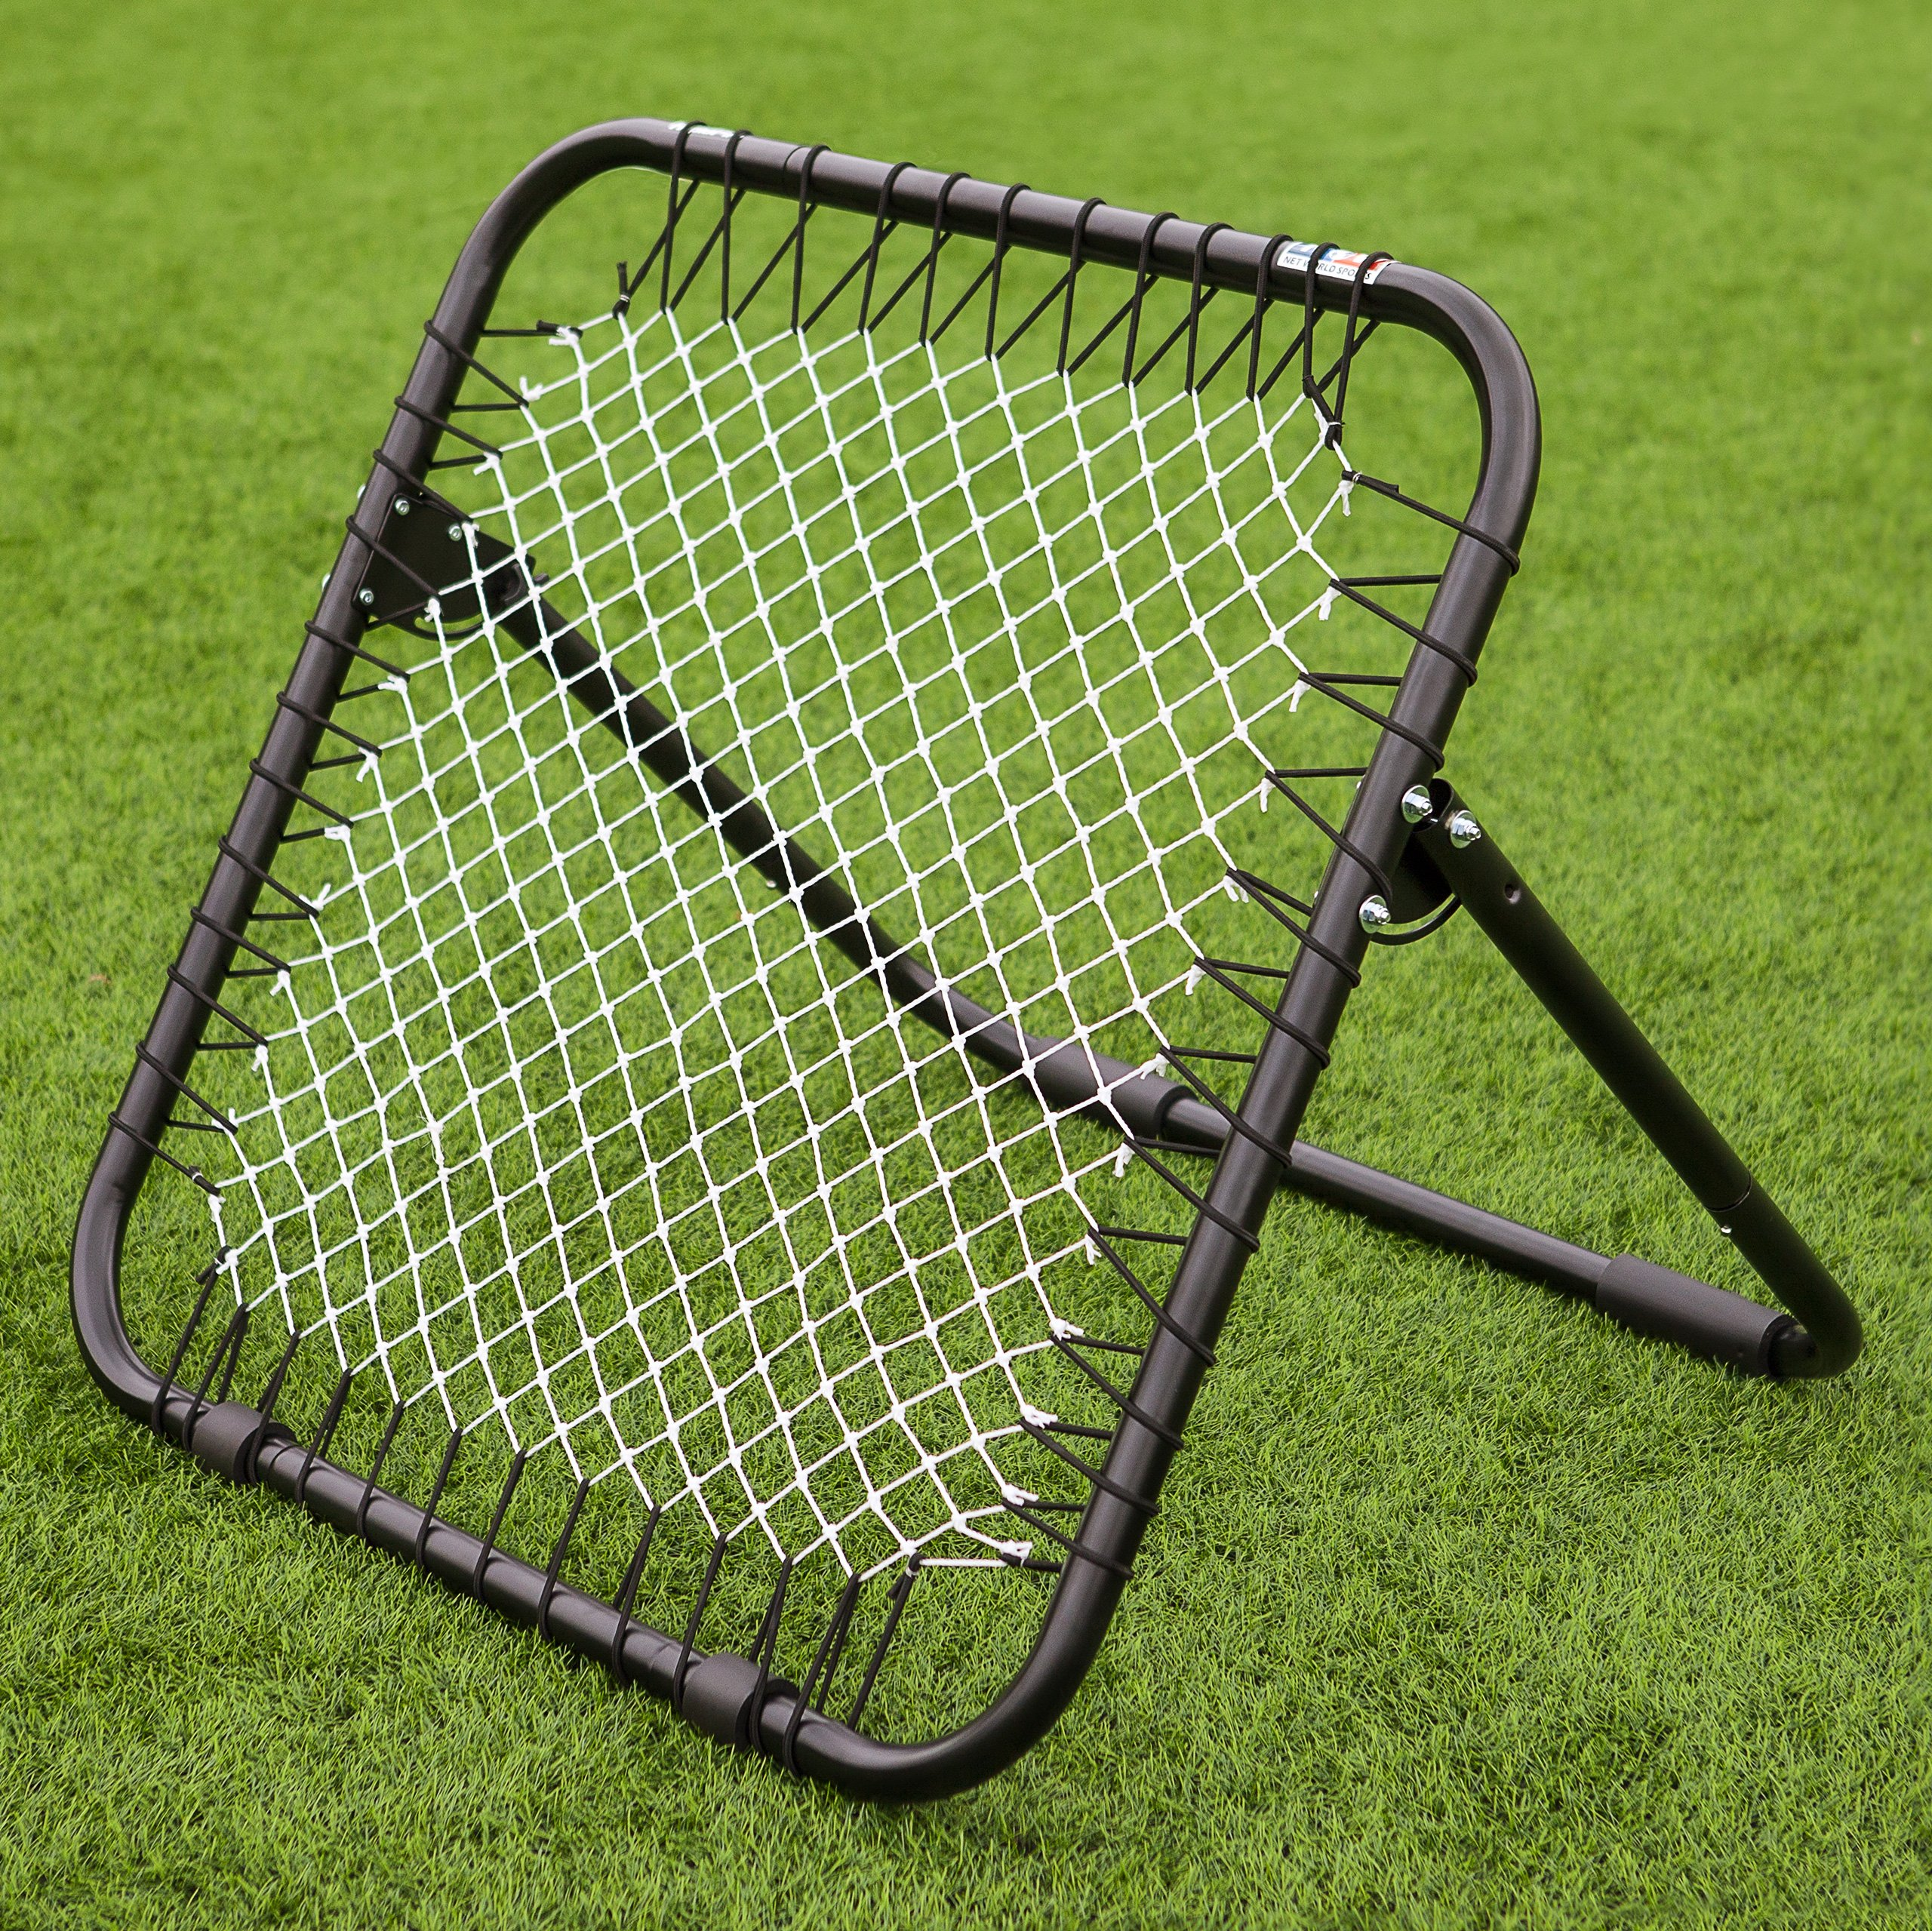 RapidFire Cricket Rebound Net - [Single Sided] - The Perfect Catching Practice Tool - [Net World Sports]